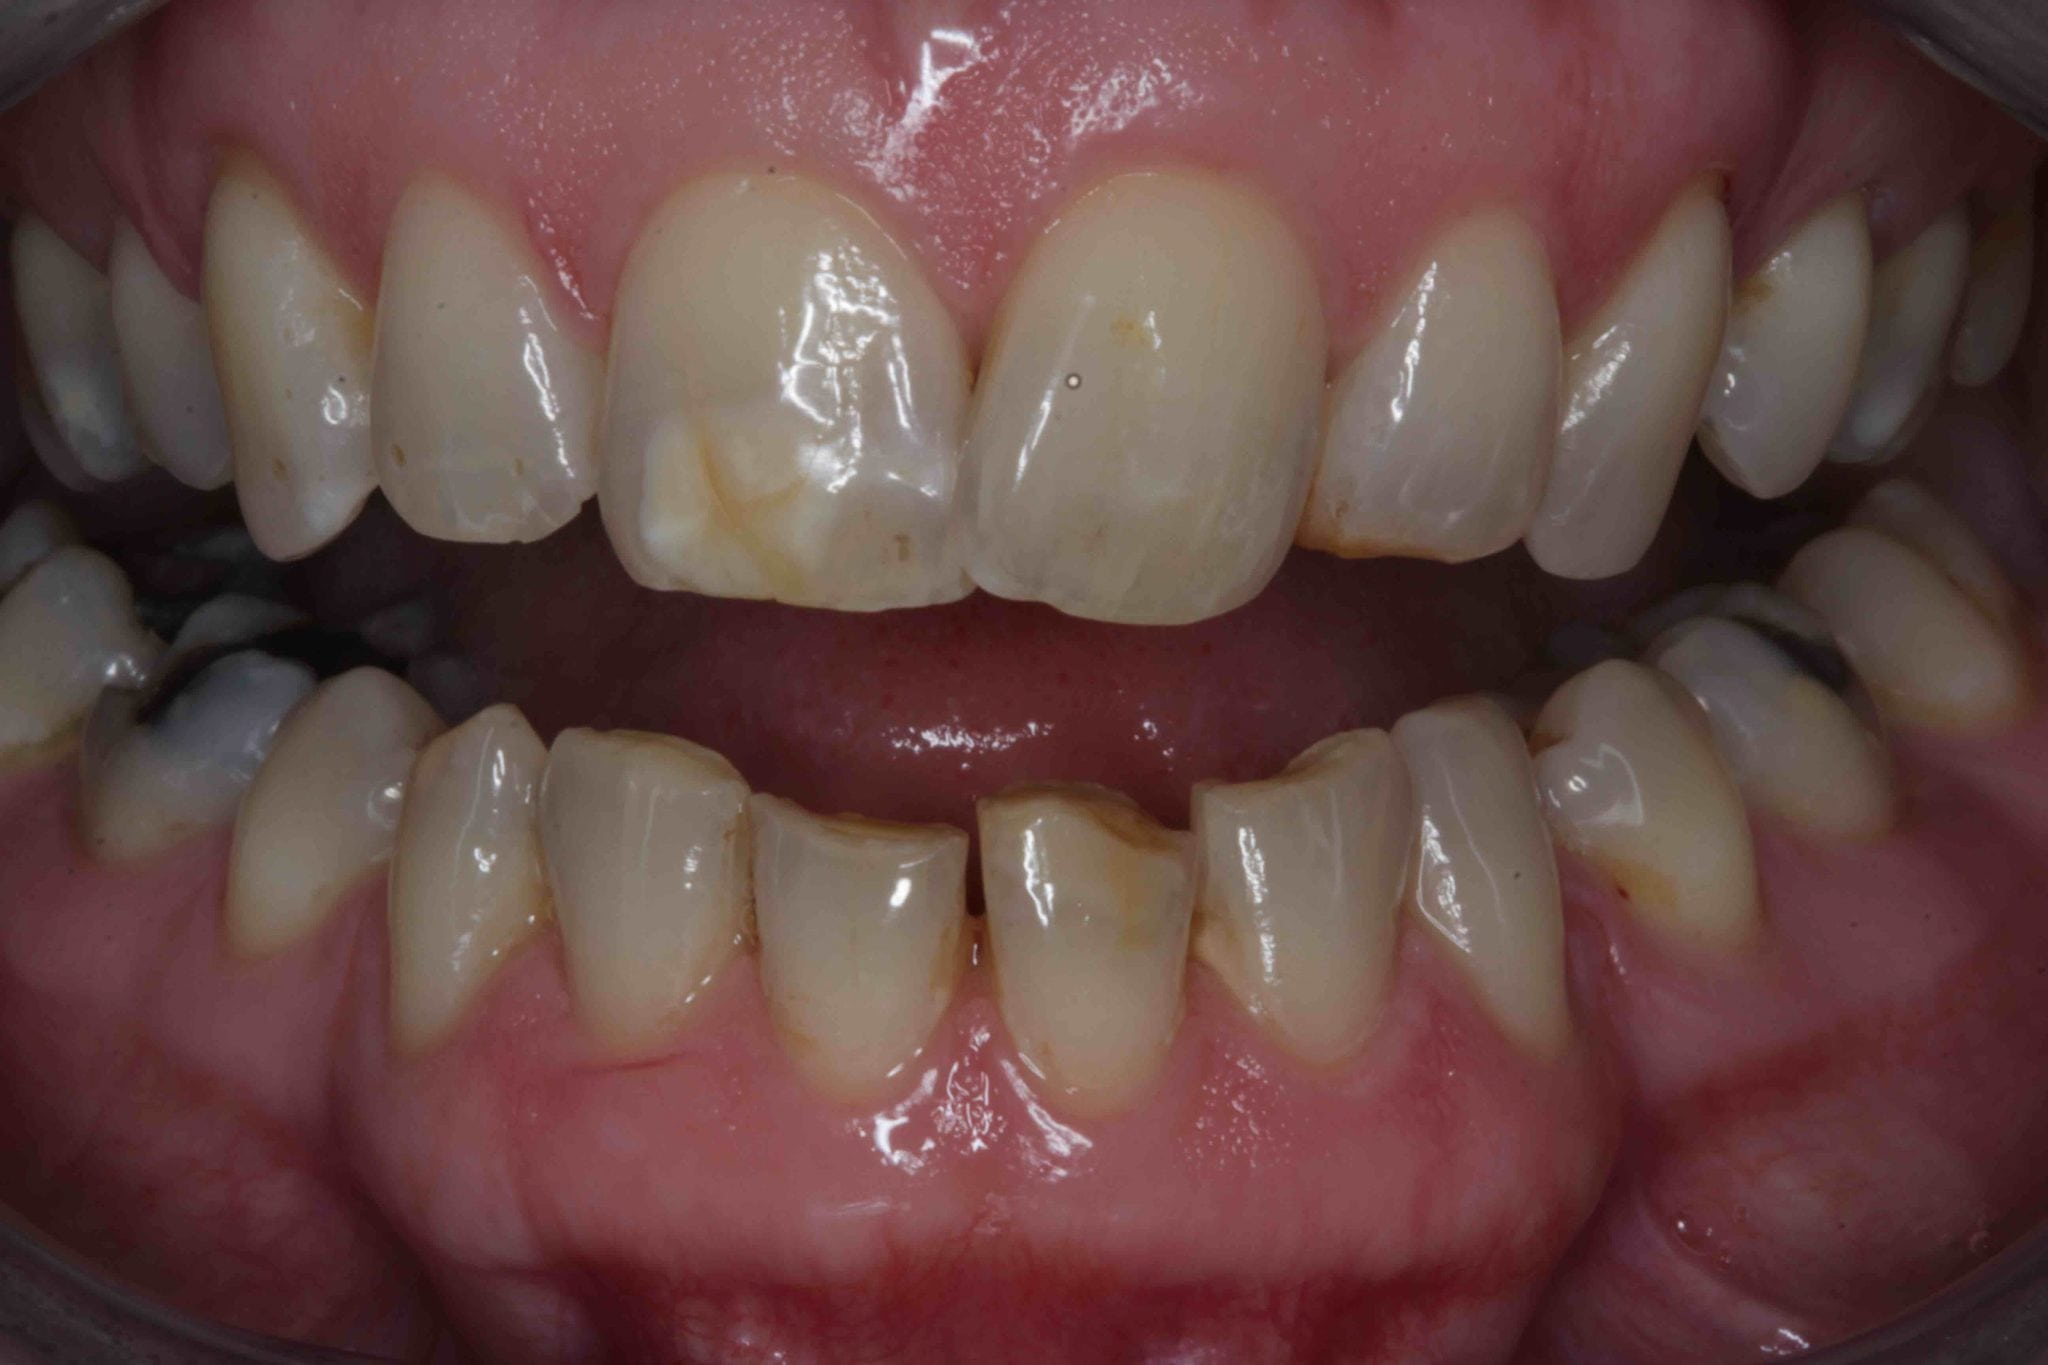 Tooth Bonding for severe staining and discolouration